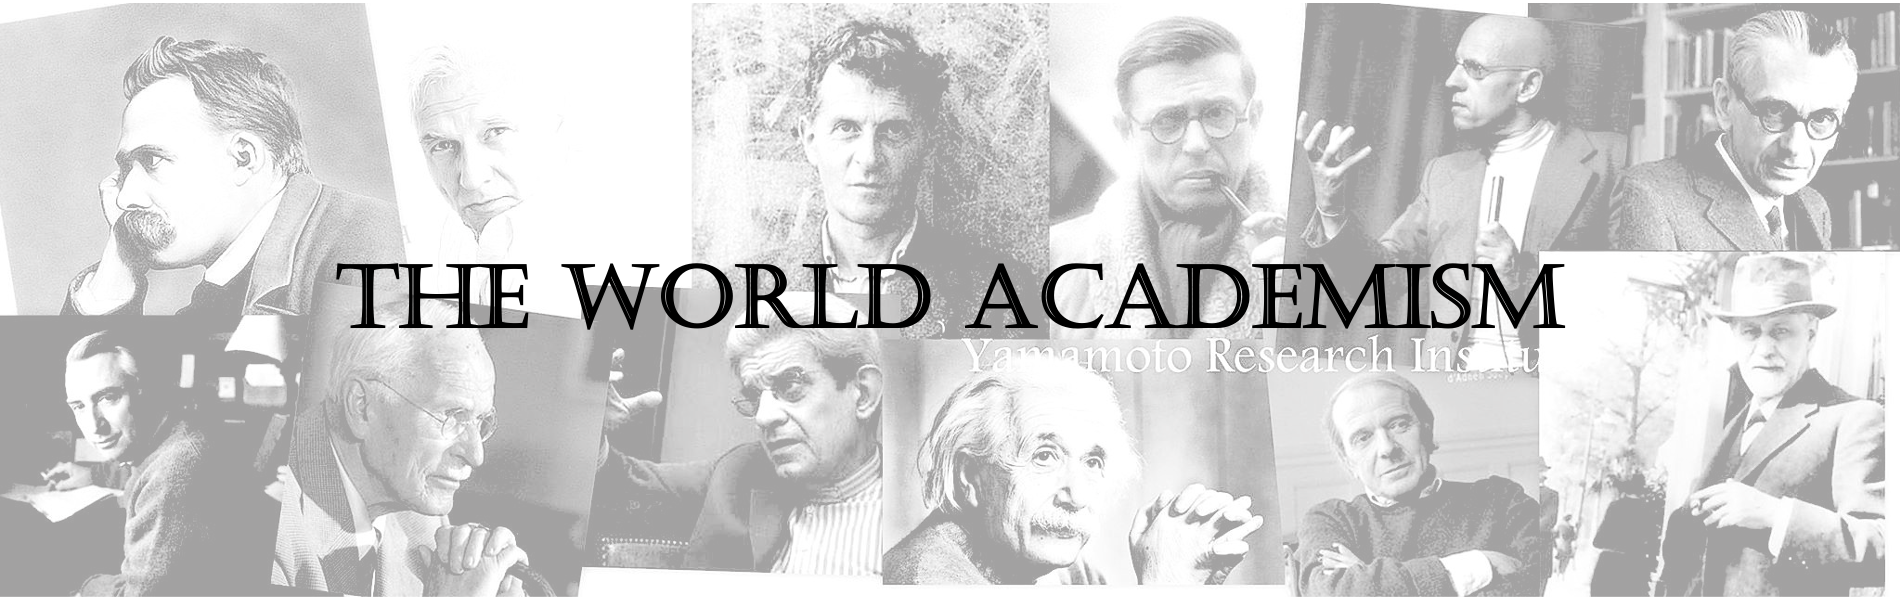 THE WORLD ACADEMISM